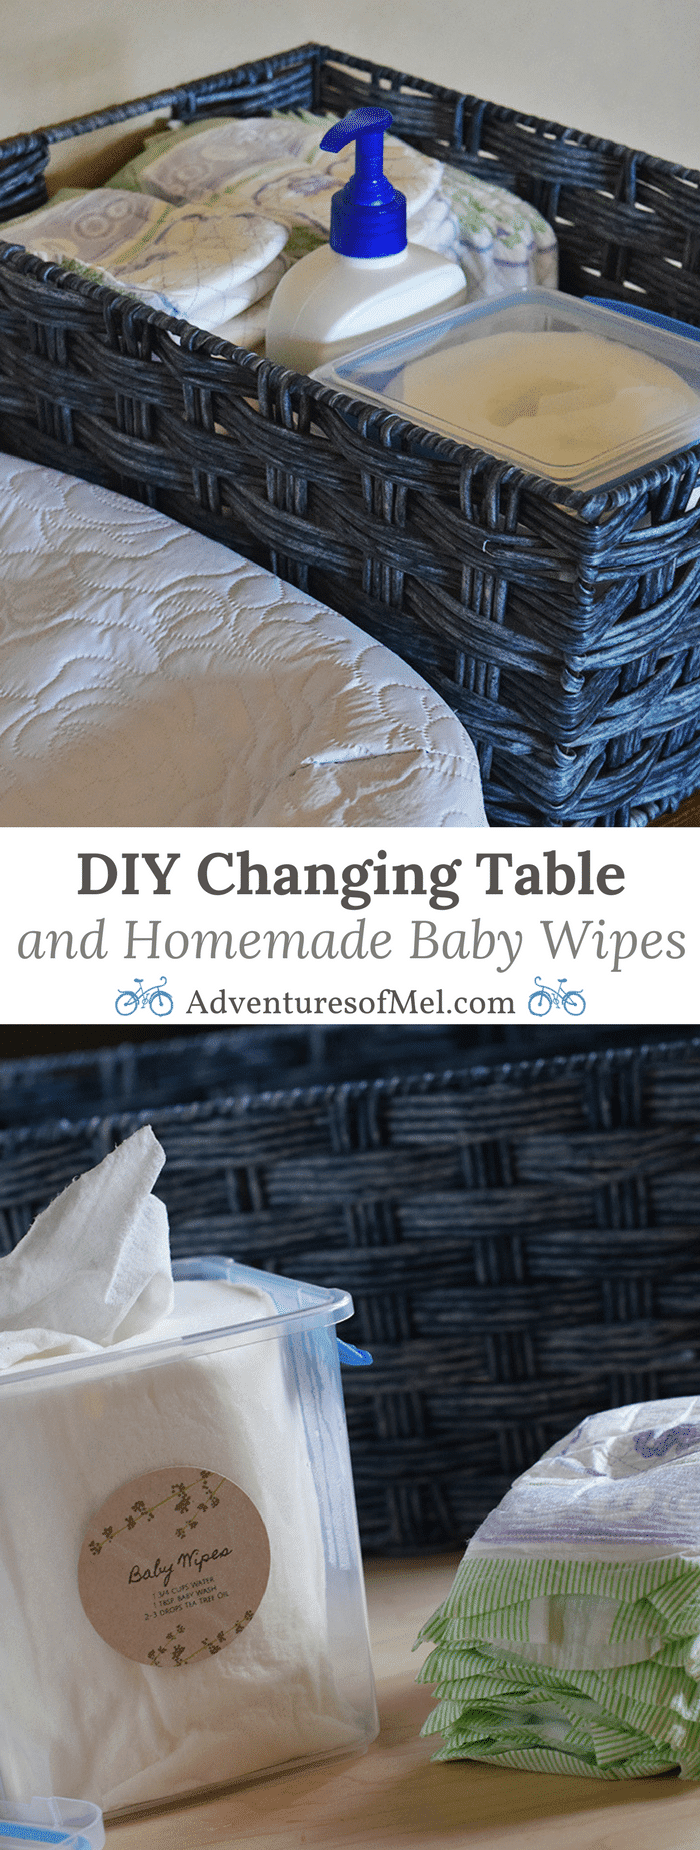 How to create a DIY changing table from a dresser and make your own homemade baby wipes, along with a few tips for adding joy to spring cleaning and organizing your home, whether in the baby's room or elsewhere.